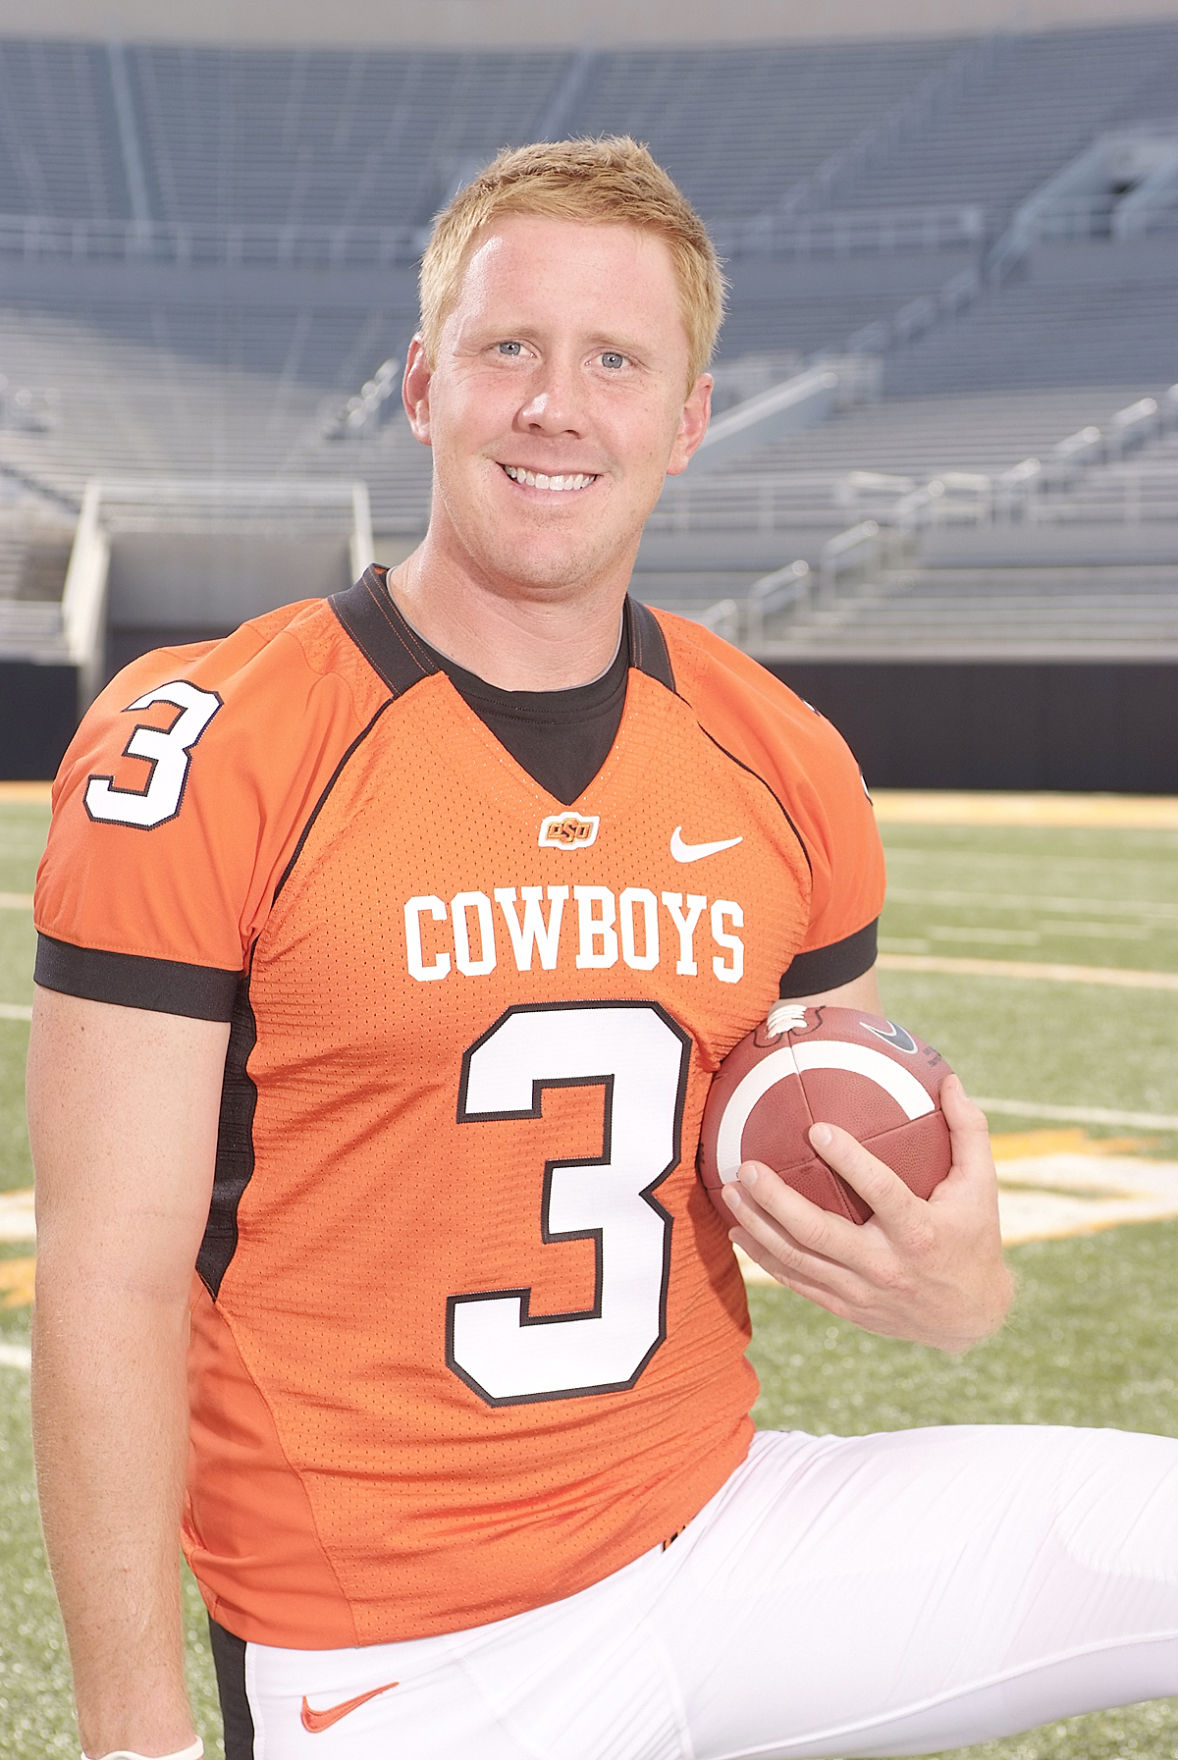 Will Brandon Weeden and Justin Blackmon go to the NFL? | Sports ...